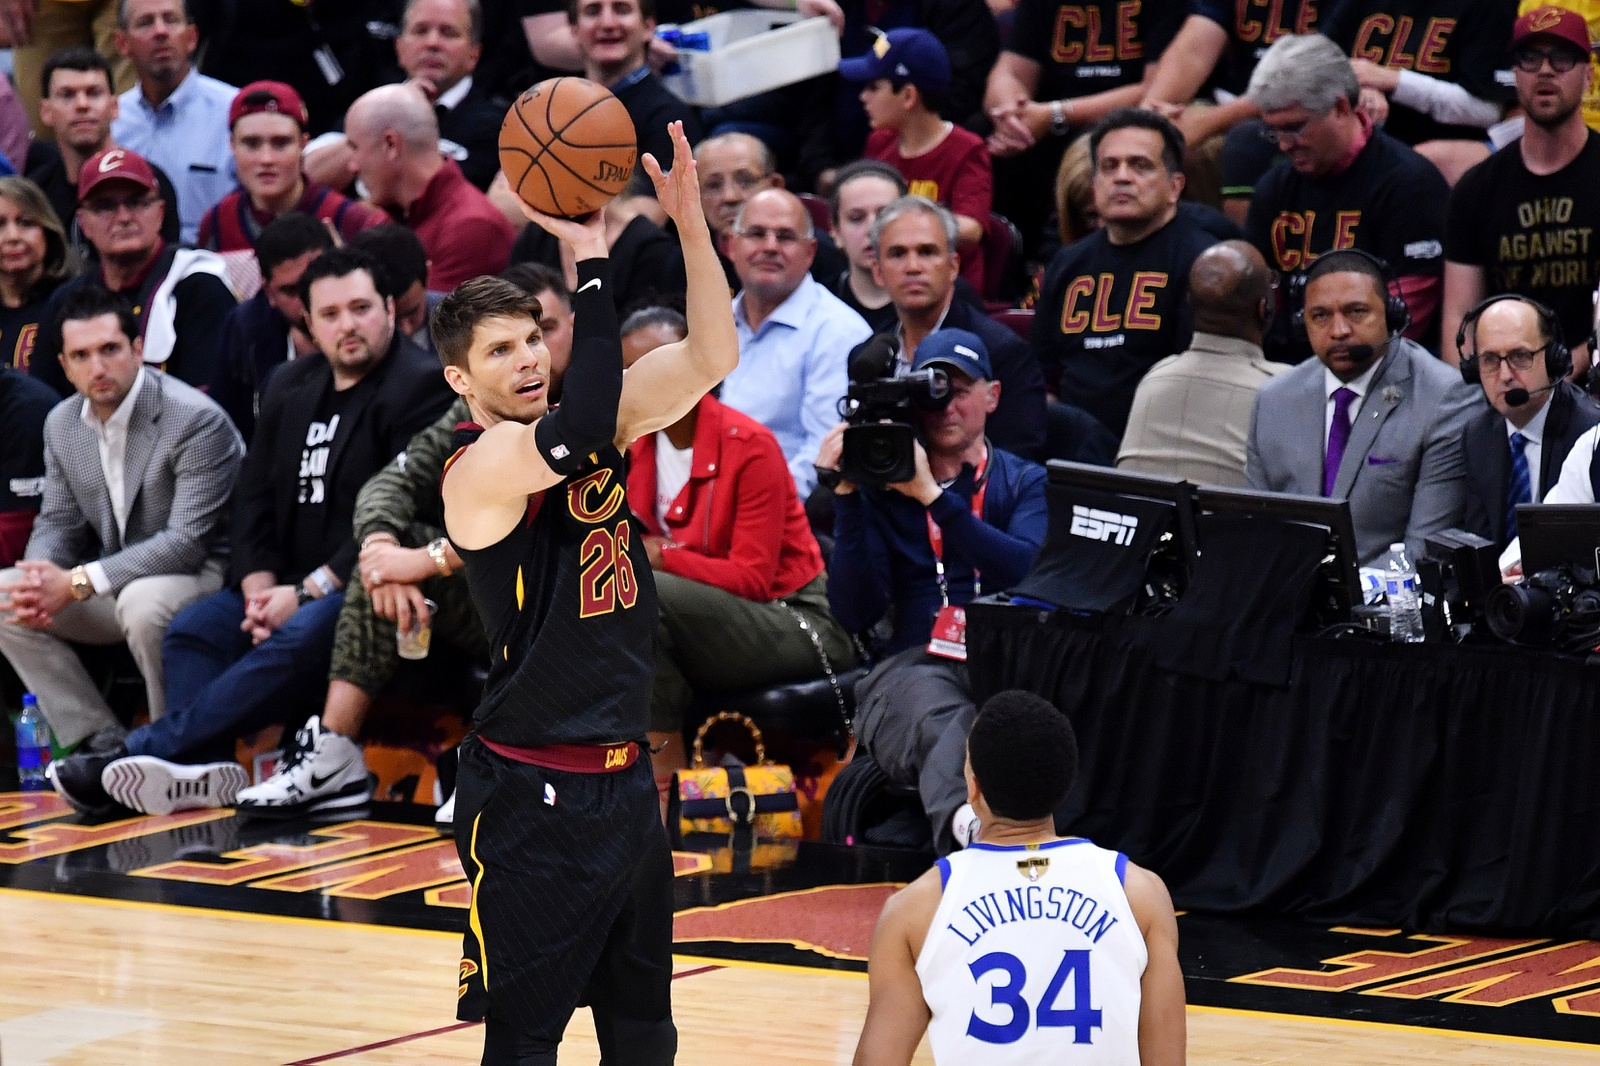 Kyle Korver #26 of the Cleveland Cavaliers shoots against Shaun Livingston #34 of the Golden State Warriors during Game Three of the 2018 NBA Finals at Quicken Loans Arena on June 6, 2018 in Cleveland, Ohio.